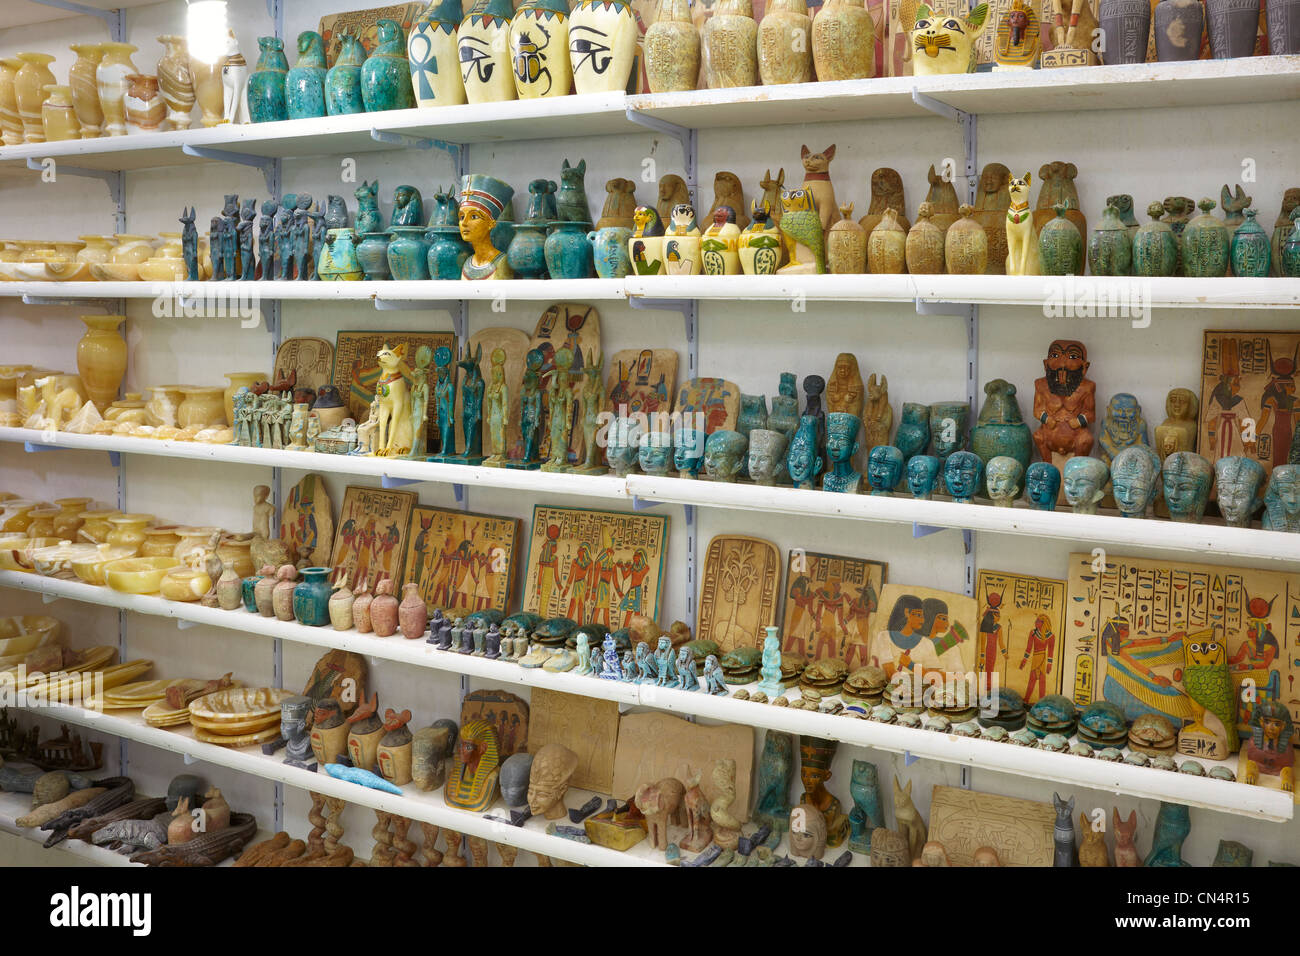 Egypt - shop with alabaster and basaltic souvenirs, Aswan, Egypt - Stock Image